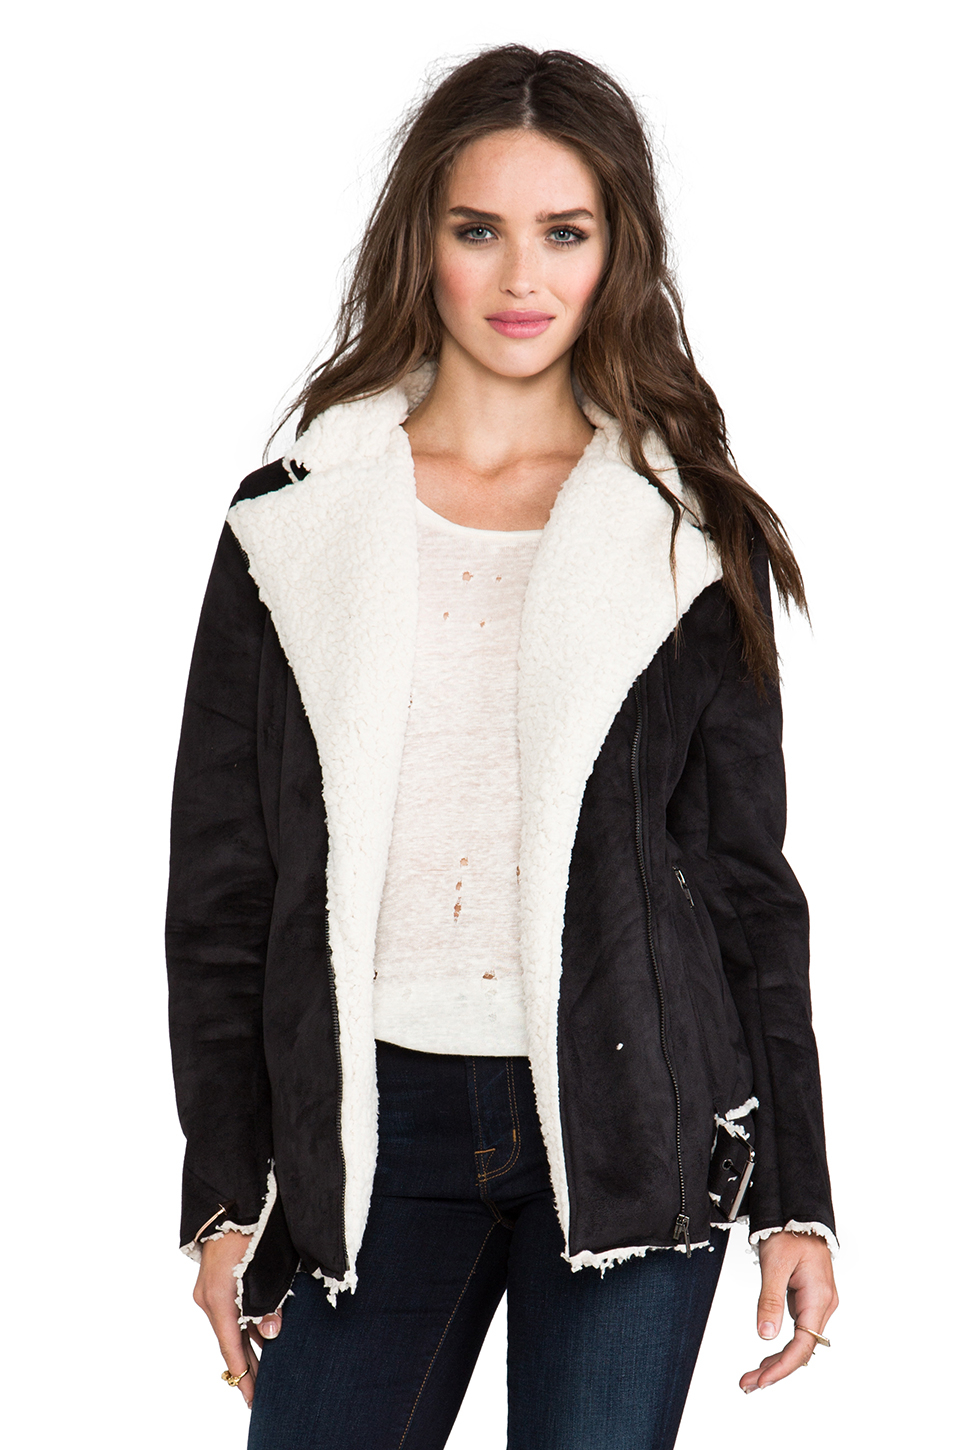 Women's black shearling coat